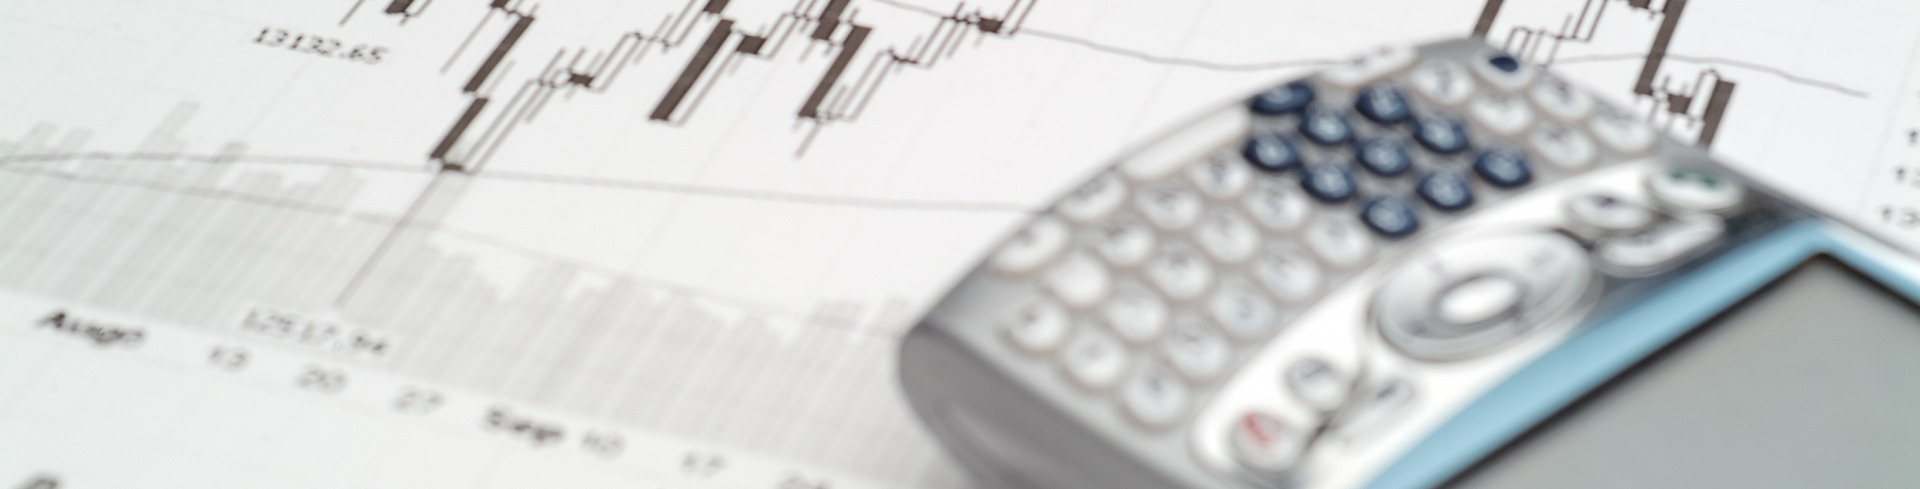 Stock Quotes Synergy Financial Services